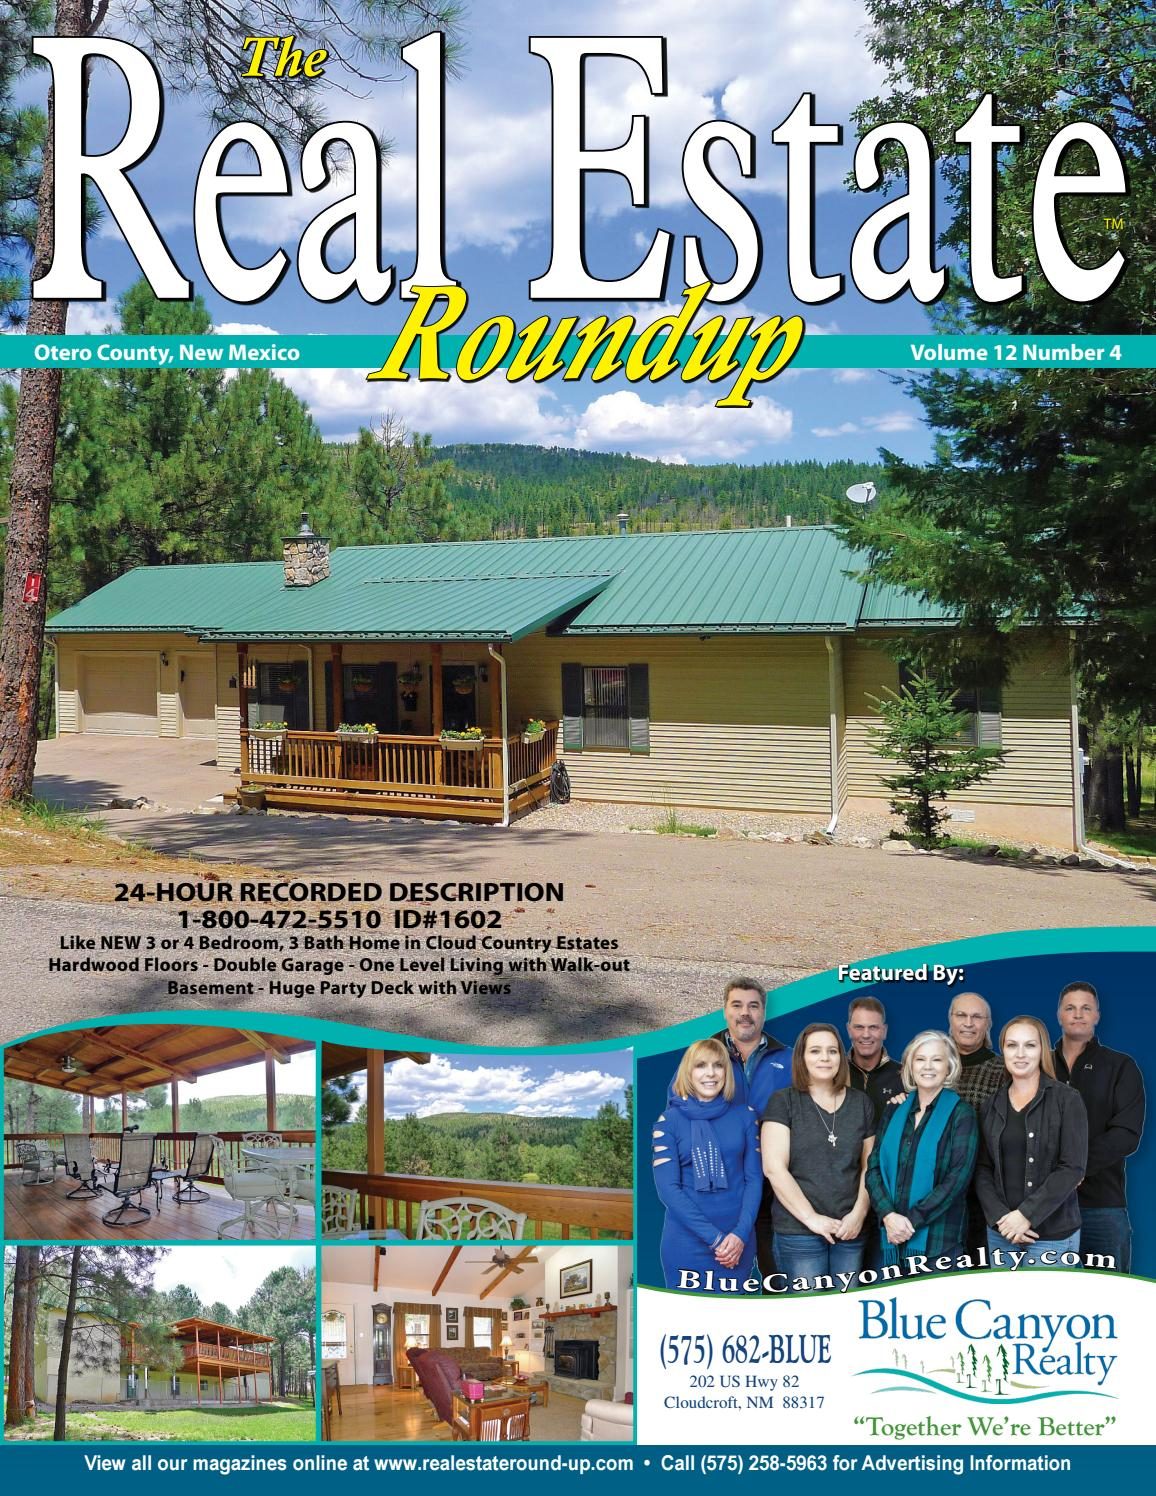 New mexico otero county cloudcroft - Alamogordo Real Estate Homes Land For Sale Cloudcroft Tularosa High Rolls Vol 12 No 4 By Helpful Publications Issuu